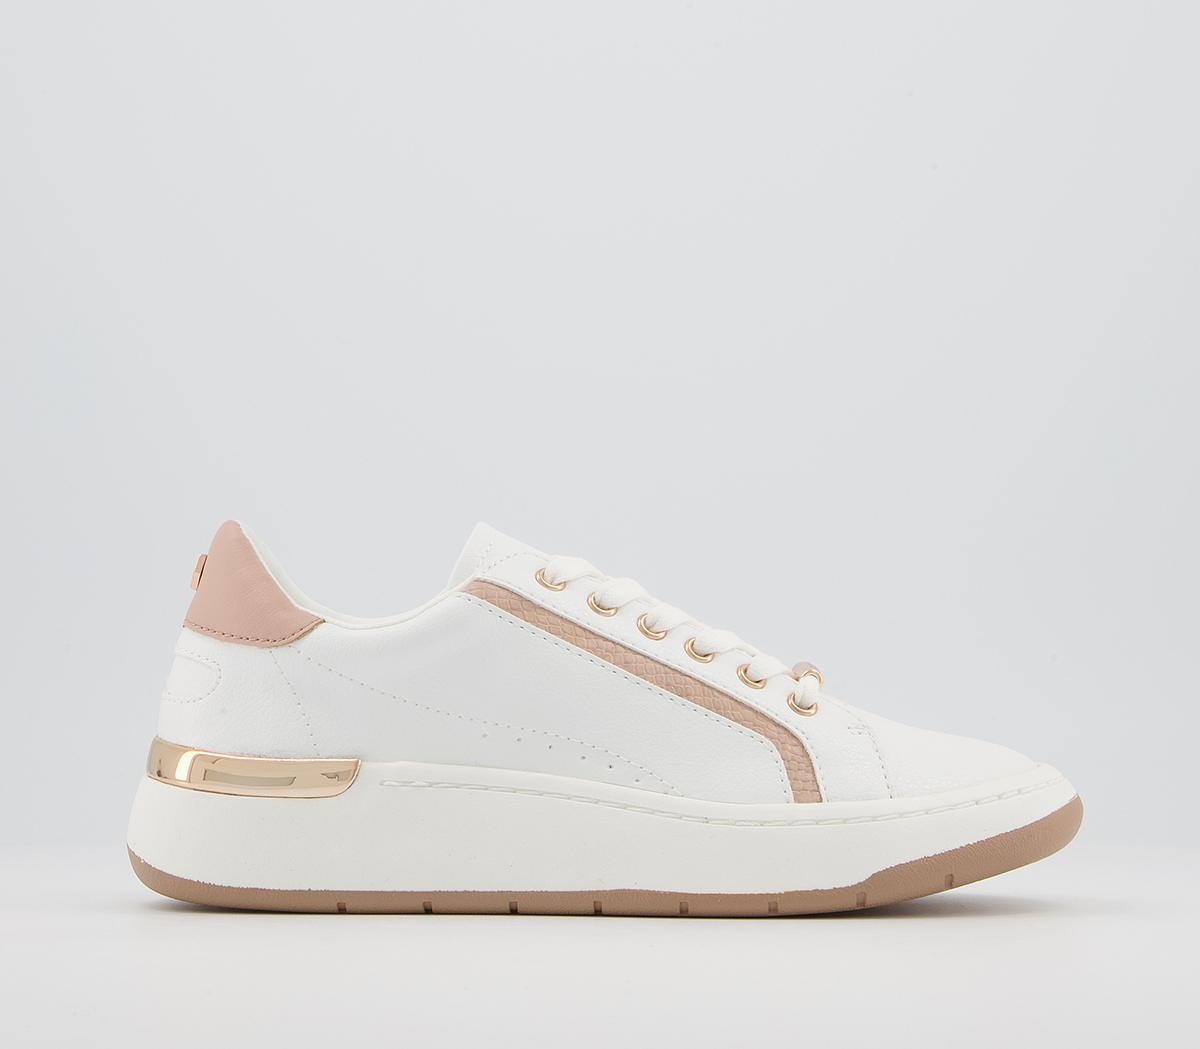 Form Feature Sole Lace Up Trainers